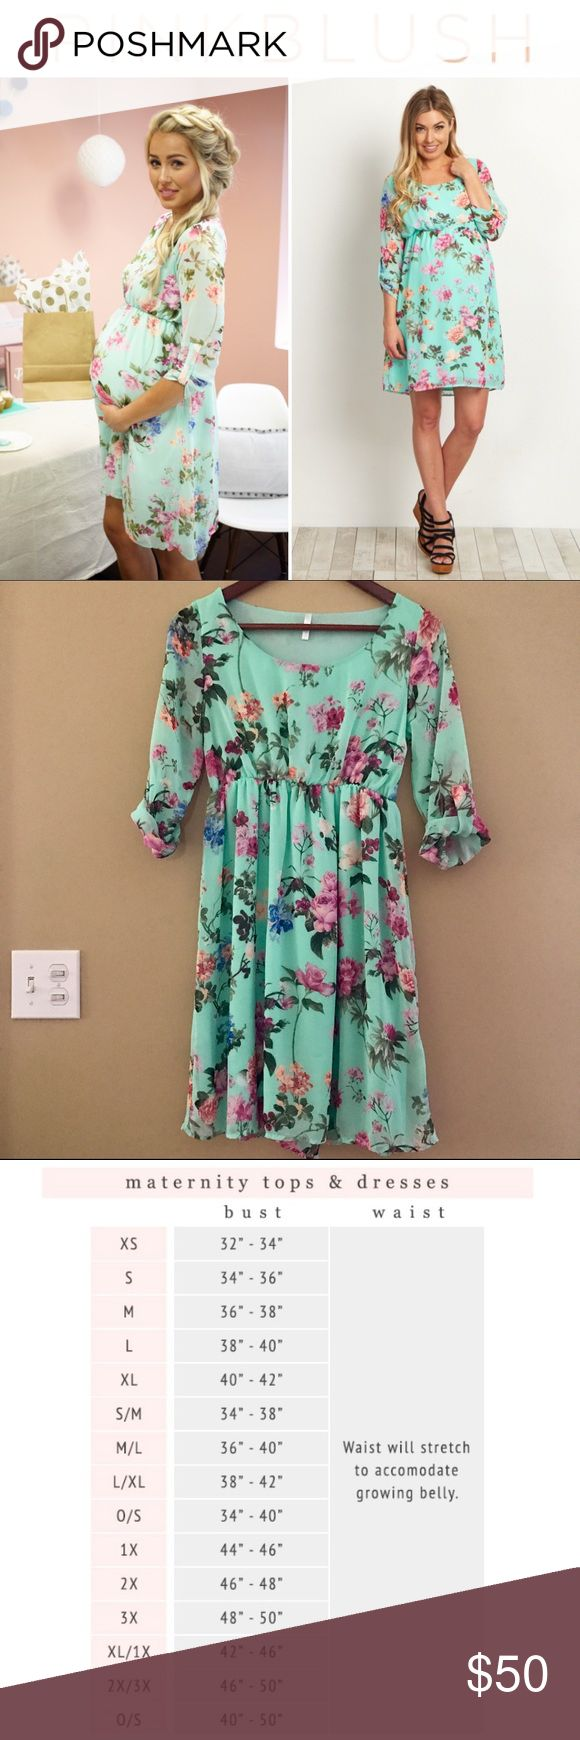 Pinkblush floral maternity dress A floral print chiffon maternity dress. 3/4 sleeves. Double lined to prevent sheerness. Cinched under bust. Rounded neckline.  35 inches from high point of shoulder to hem. Measured from Small. Color is mint green.   Worn once for an event, excellent condition! I am petite, 5 ft tall, wore dress size 4 prepregnancy and this size small fit perfectly! Pinkblush Dresses